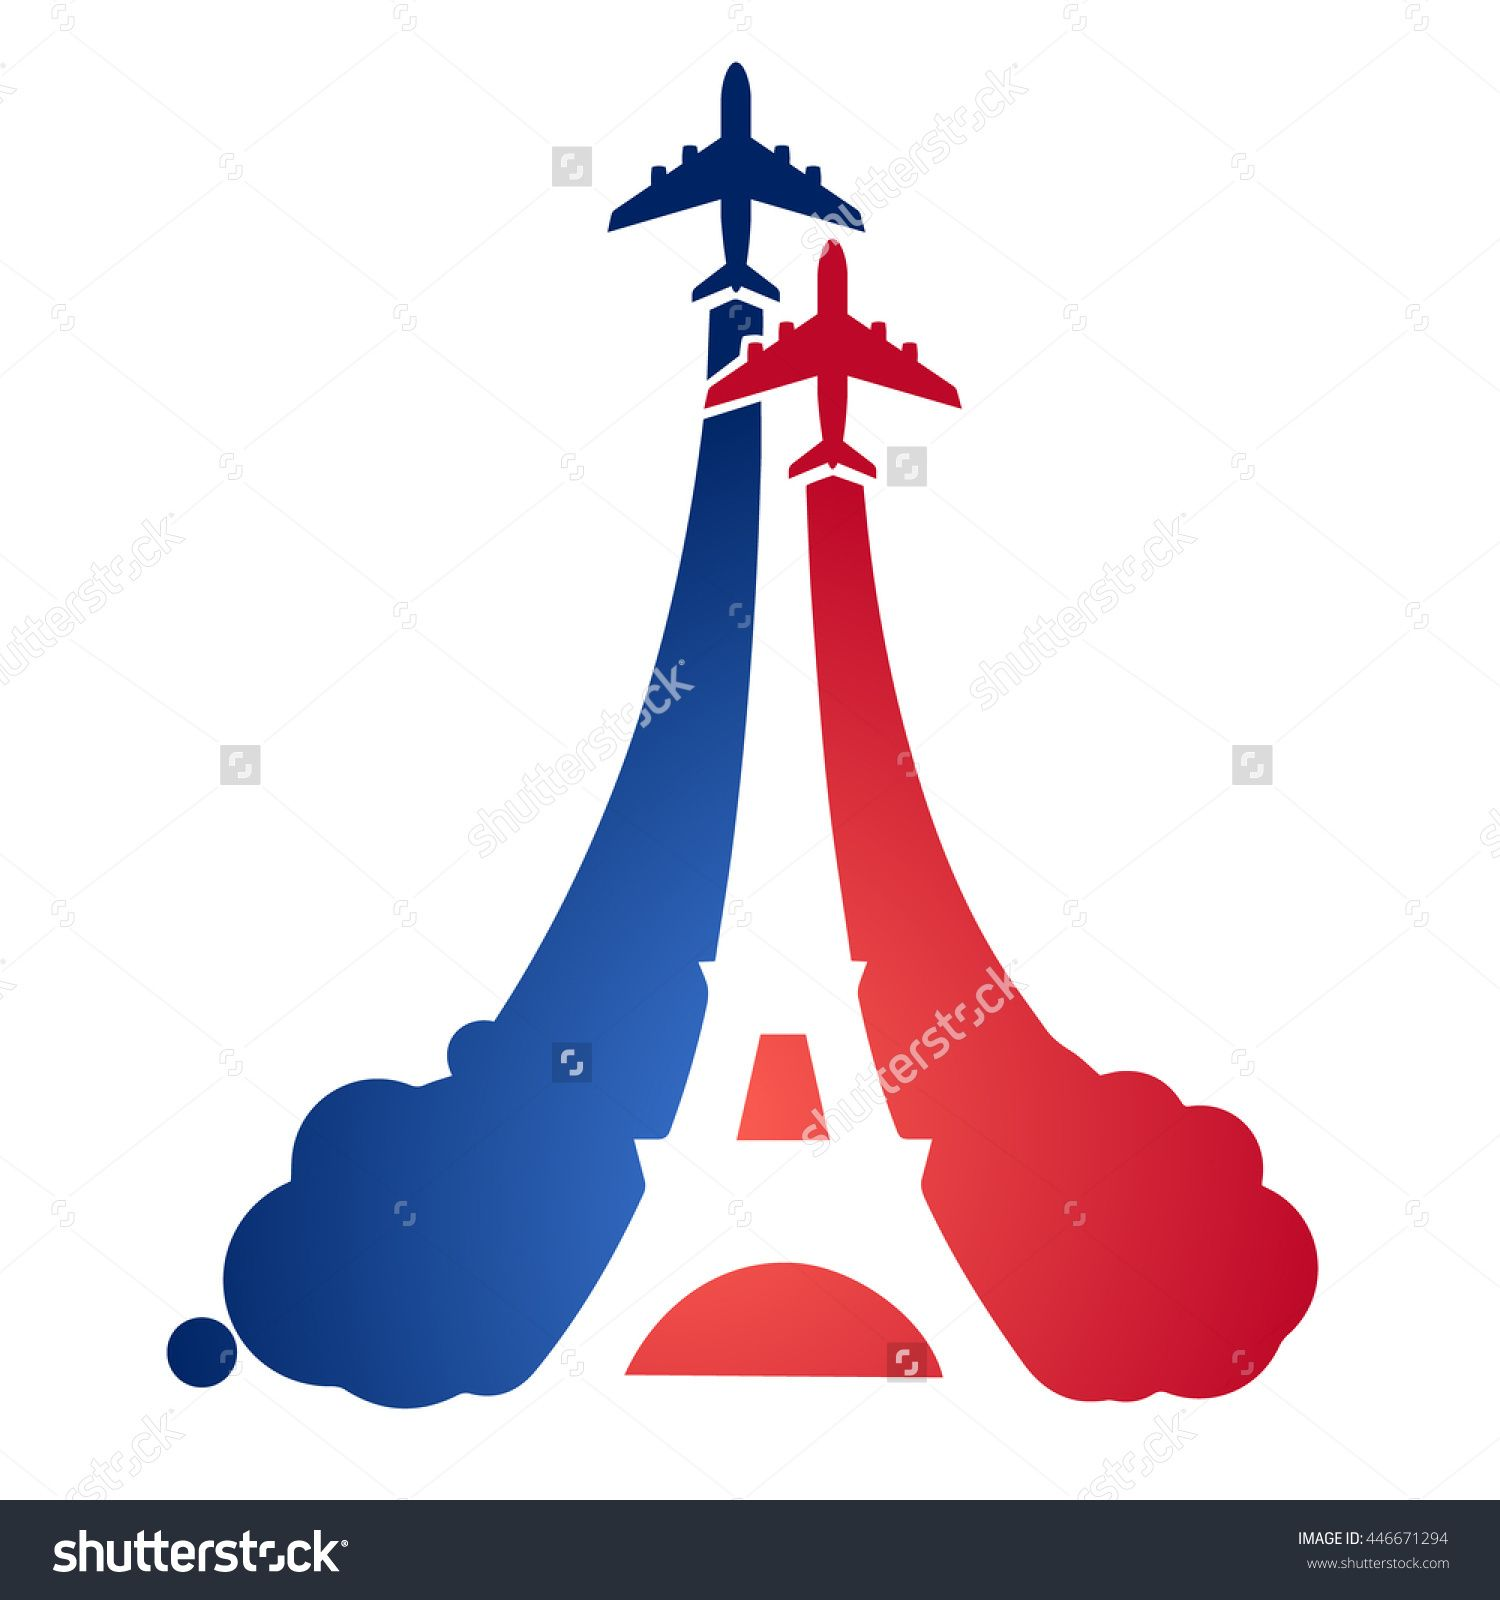 1500x1600 Logo As A Tourist Flying Aircraft, With A Silhouette Of The Eiffel